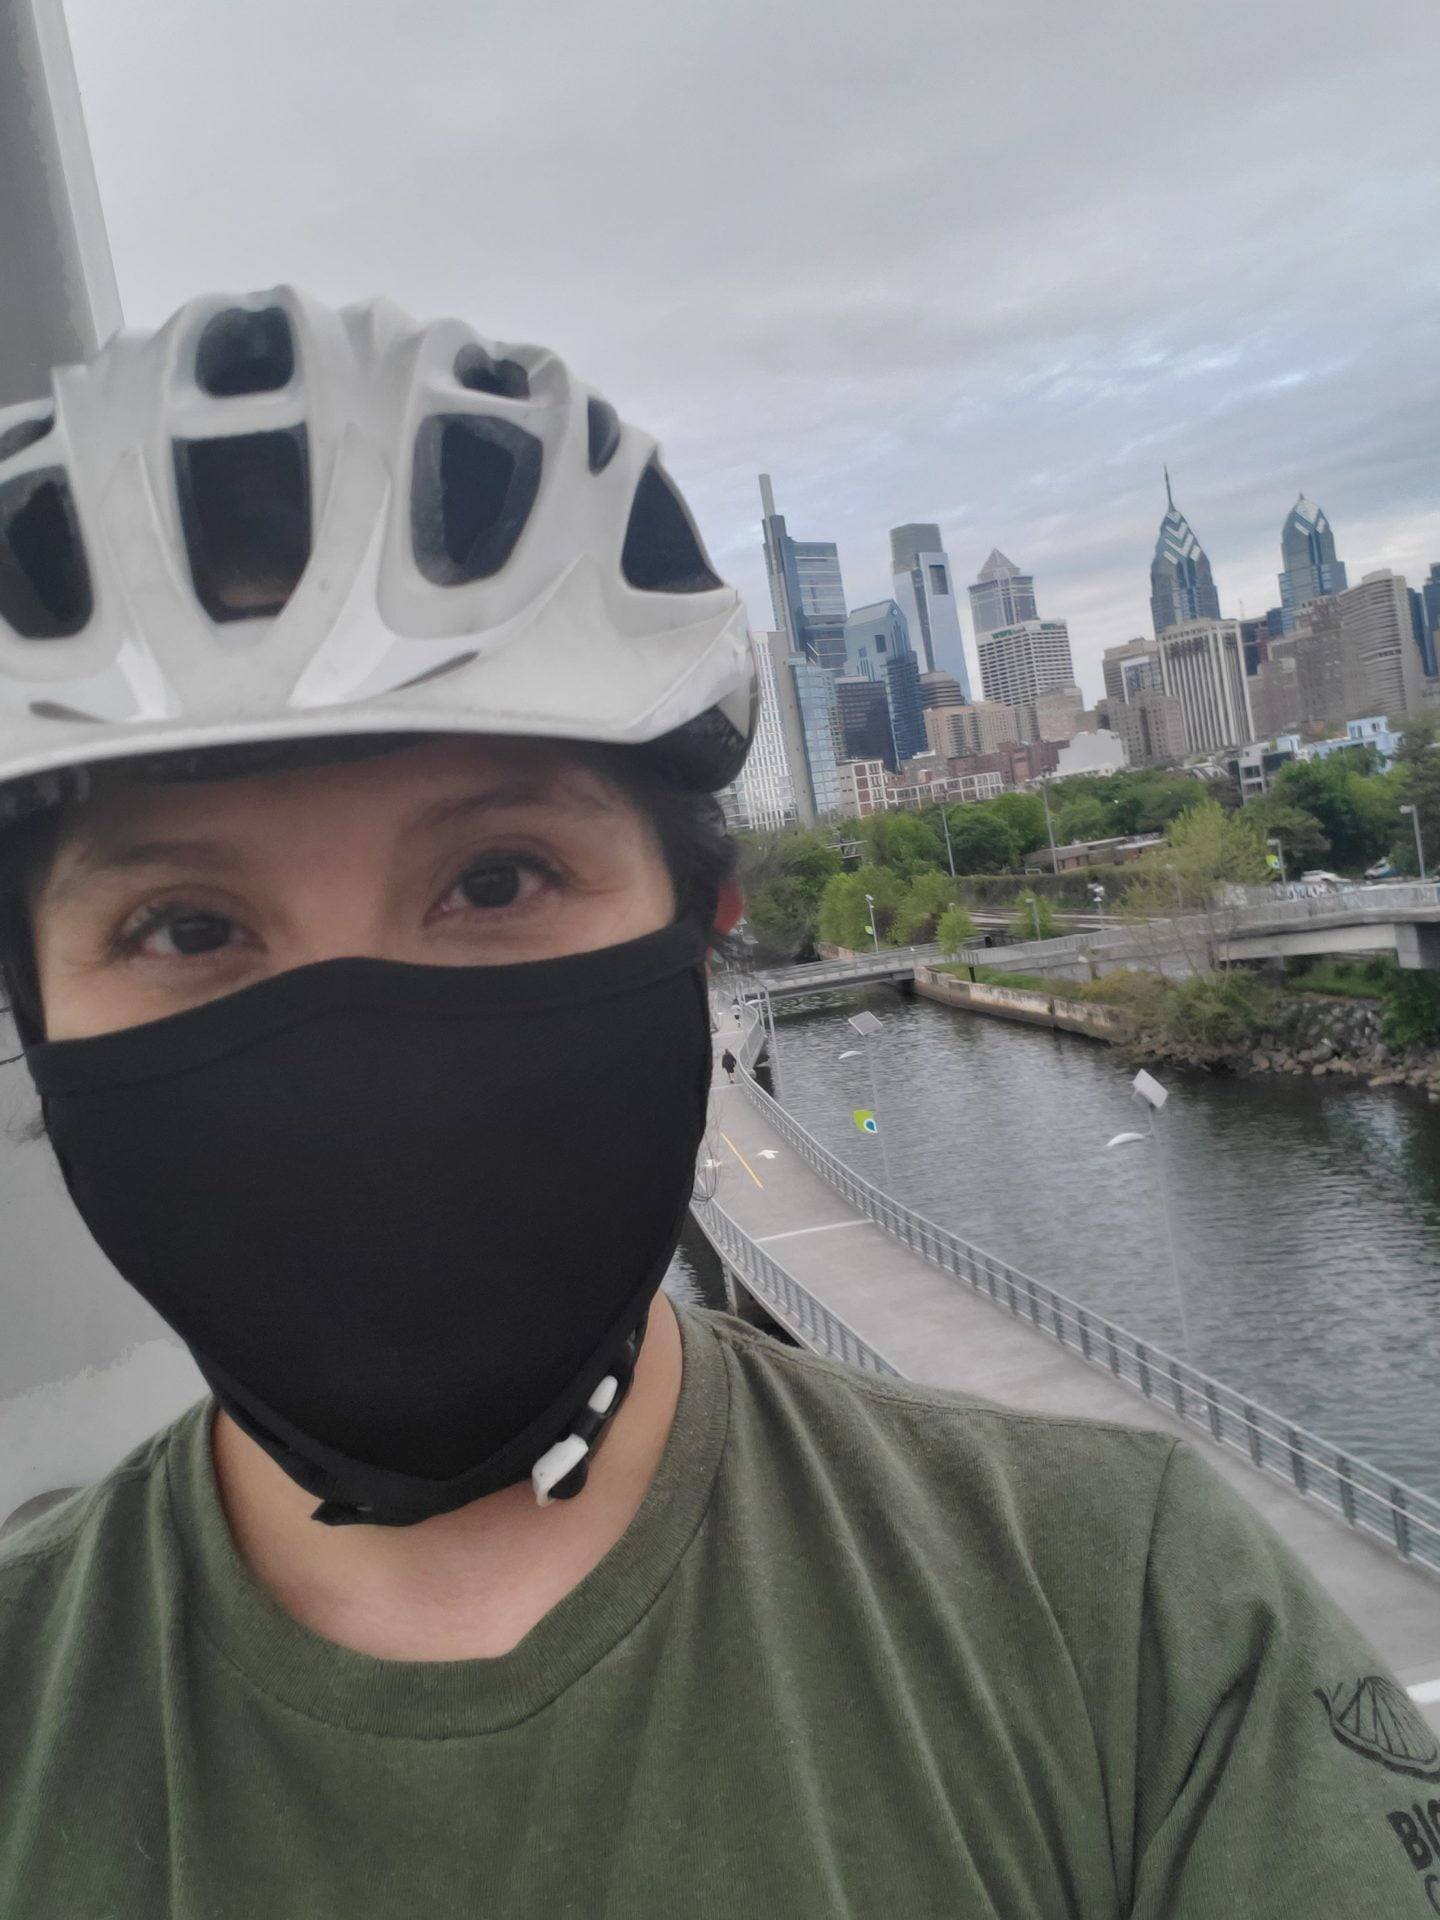 Bike in Philly